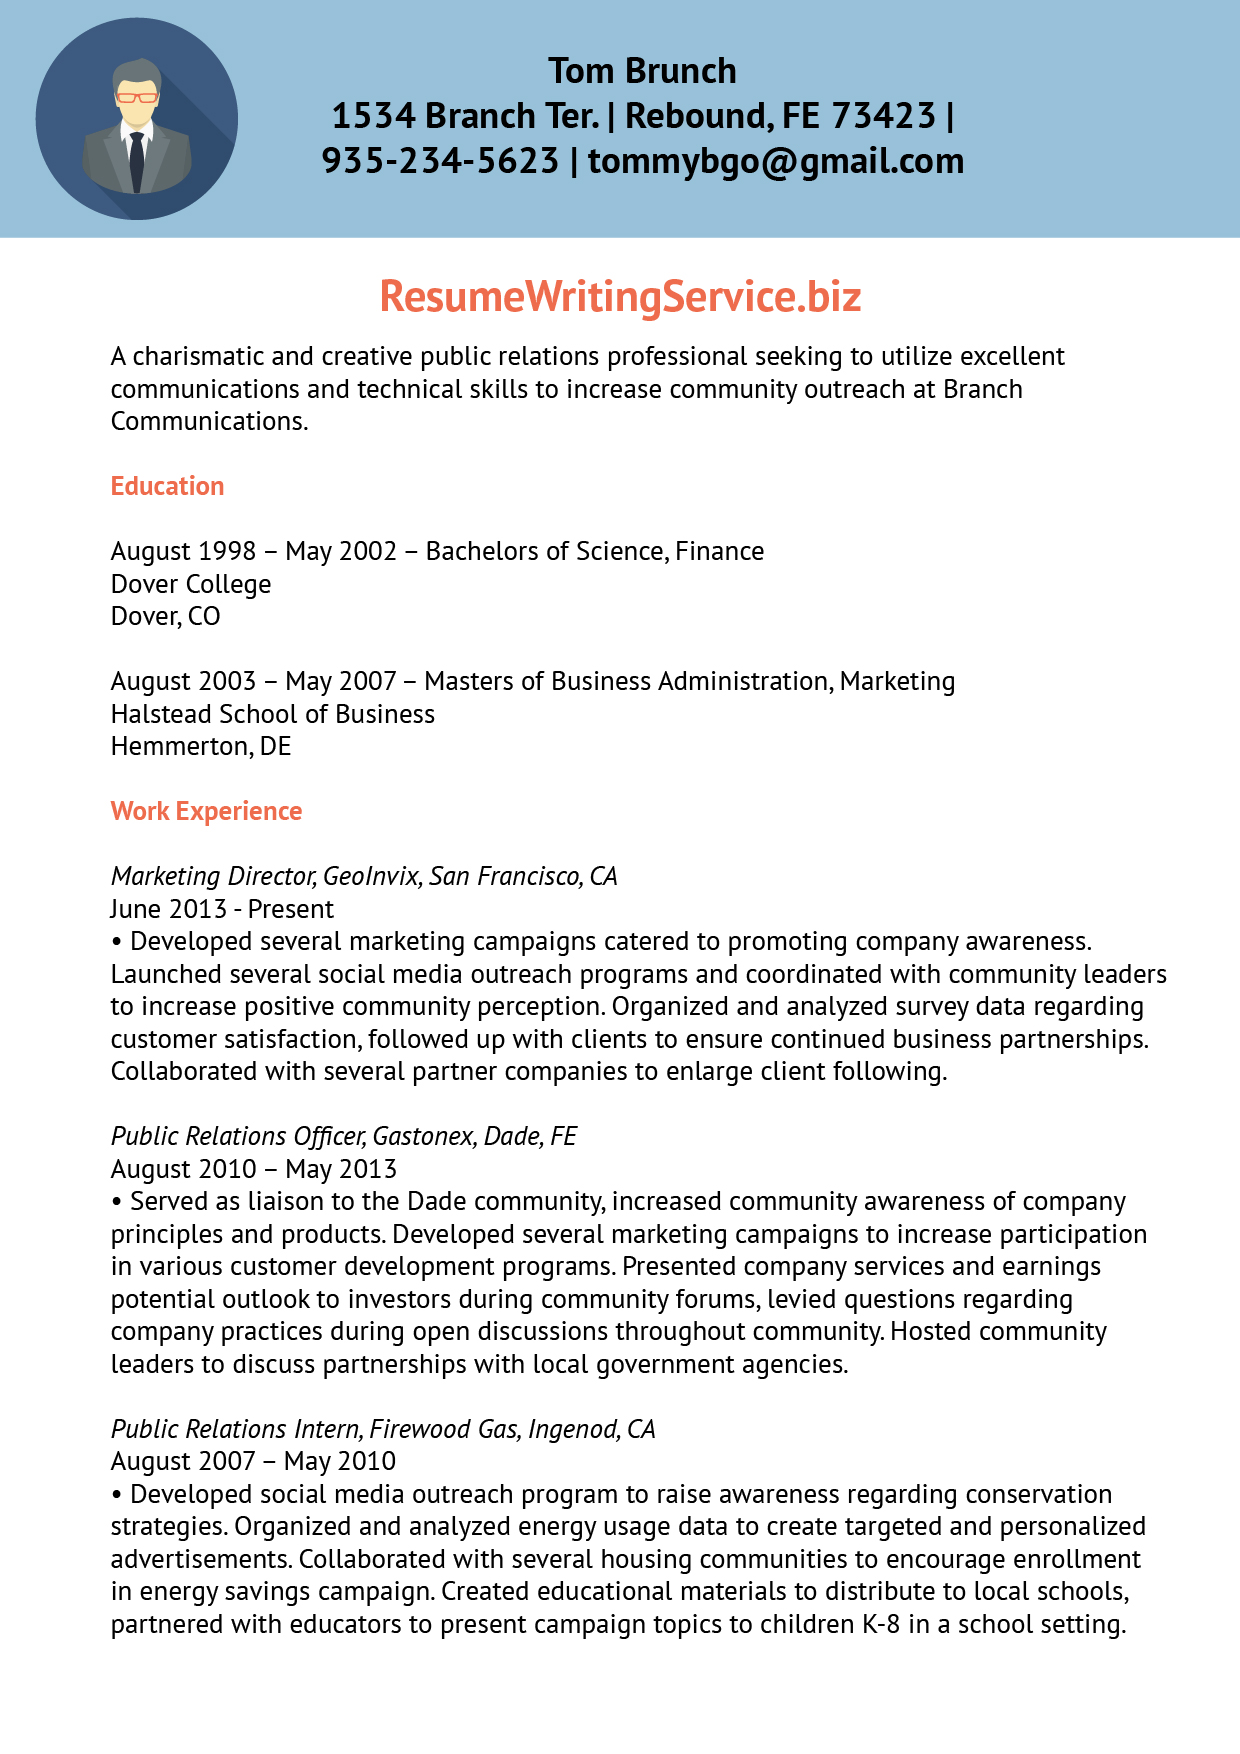 public relations manager resume sample resume writing service after